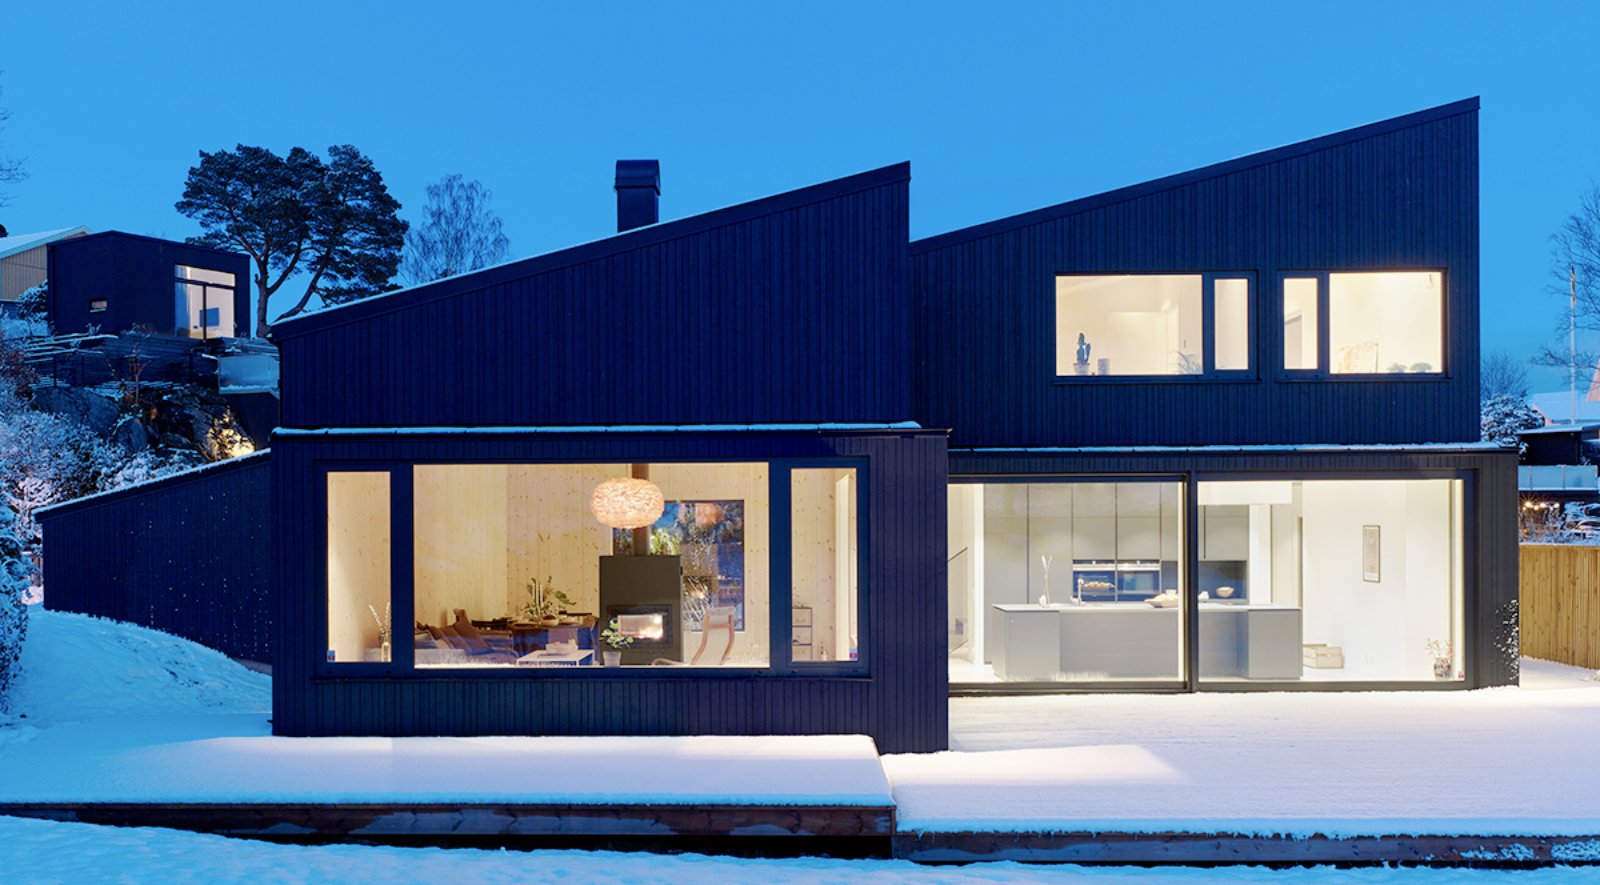 Ojersjo house by bornstein lyckefors architects 00 for Architecture 00